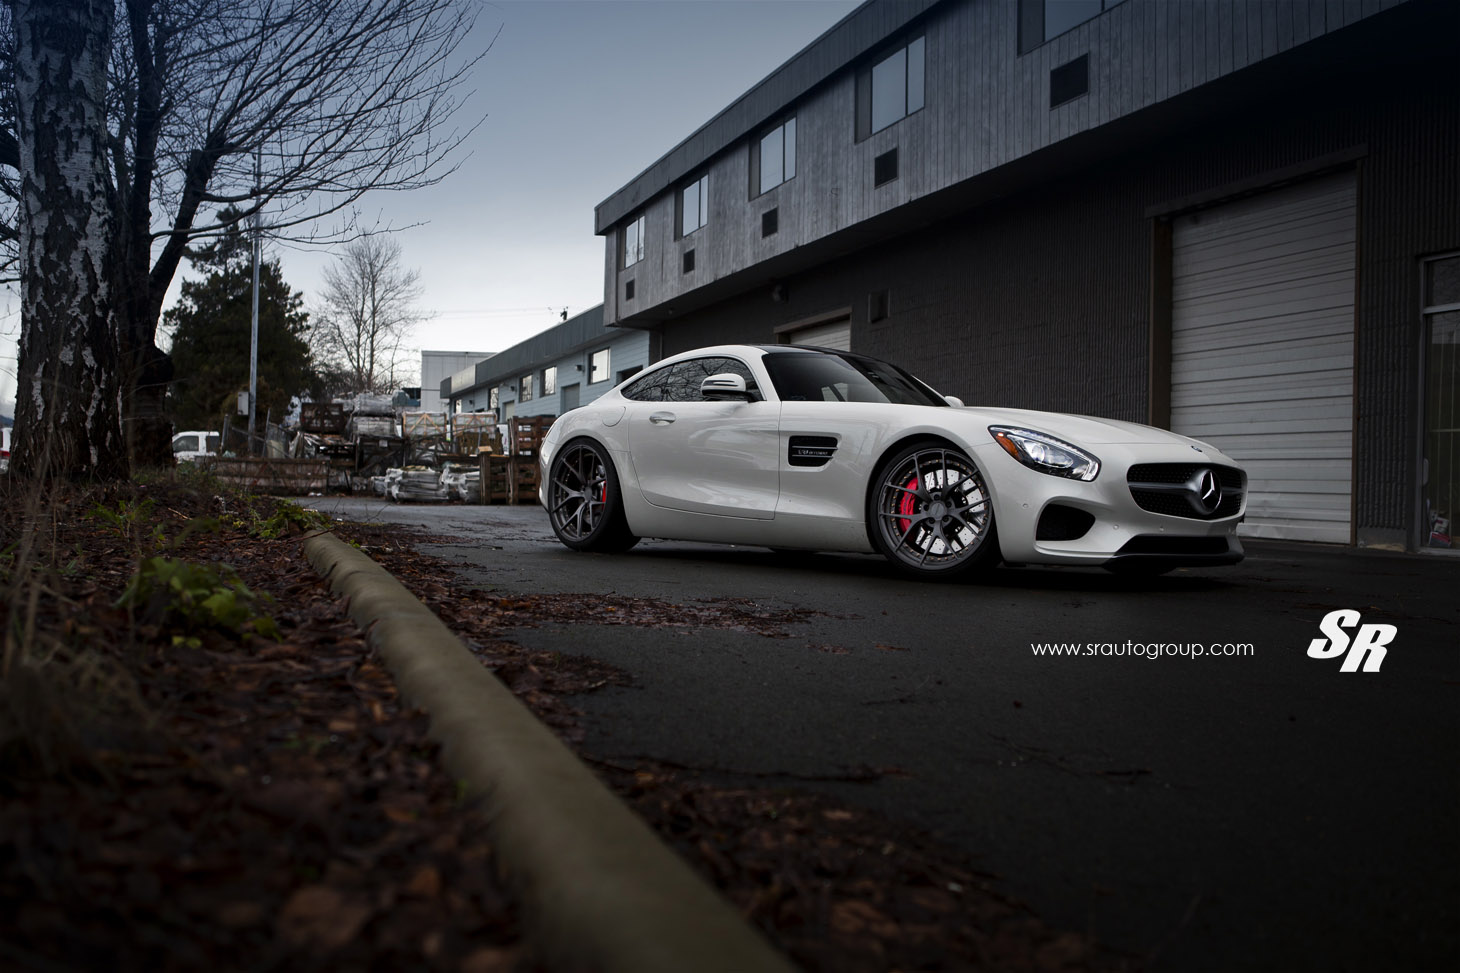 Sr Auto Group Releases Tuned Mercedes Benz Amg Gt